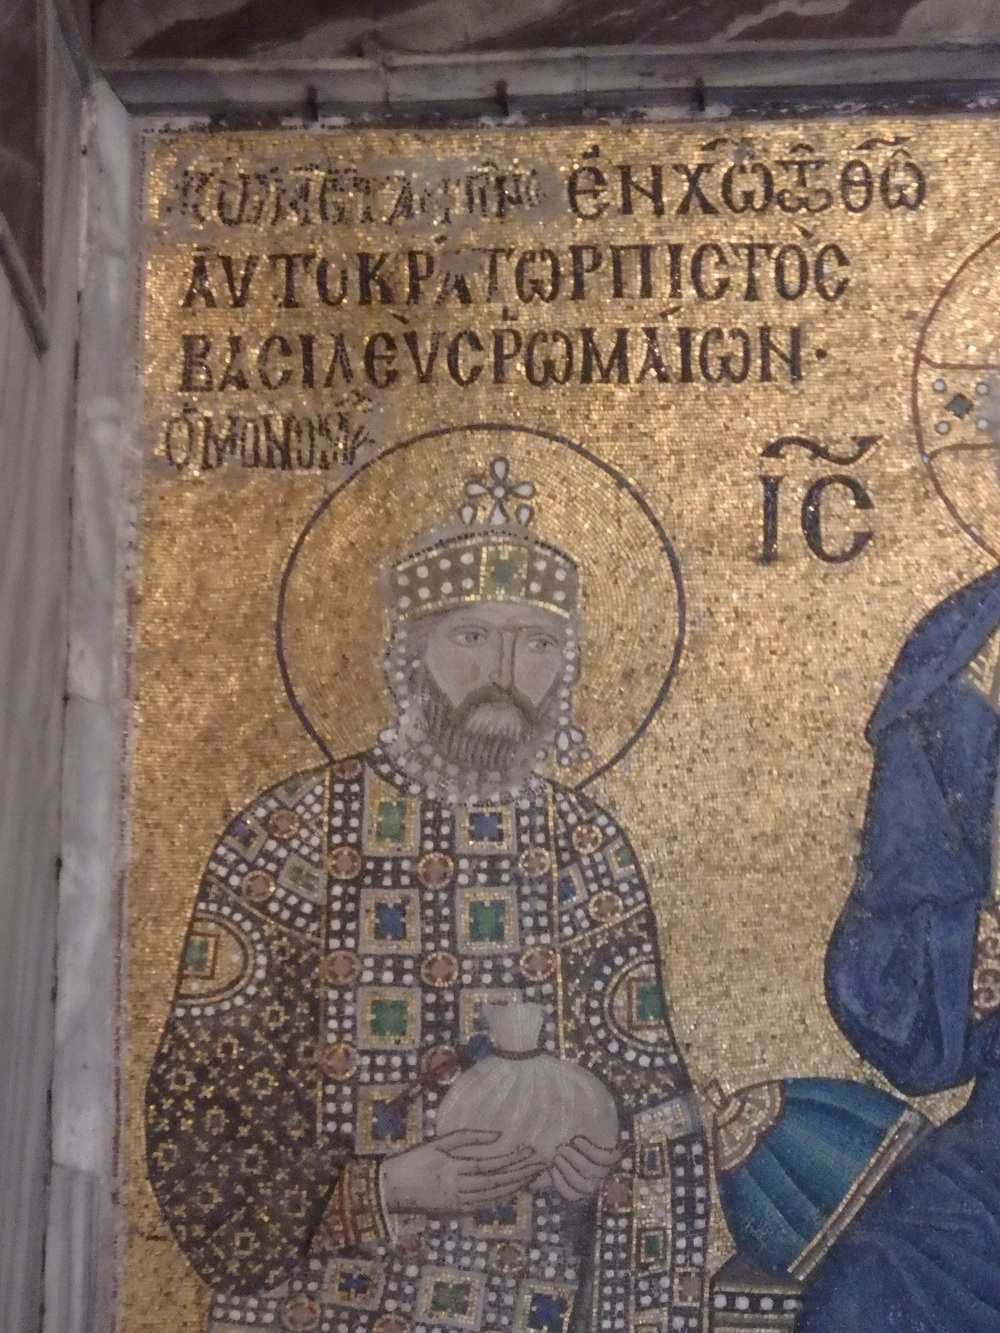 """I've got a blank space, baby, and I'll write your name."" Taylor Swift's hit song has nothing on Empress Zoe. This mosaic shows her husbands - I put it in the plural due to her multiple (monogamous) marriages. Instead of redoing the mosaic with the face of her new betrothed, the artist simply redid the name and title over the man's face - you can see how it the work looks a little sloppy above the man's head."